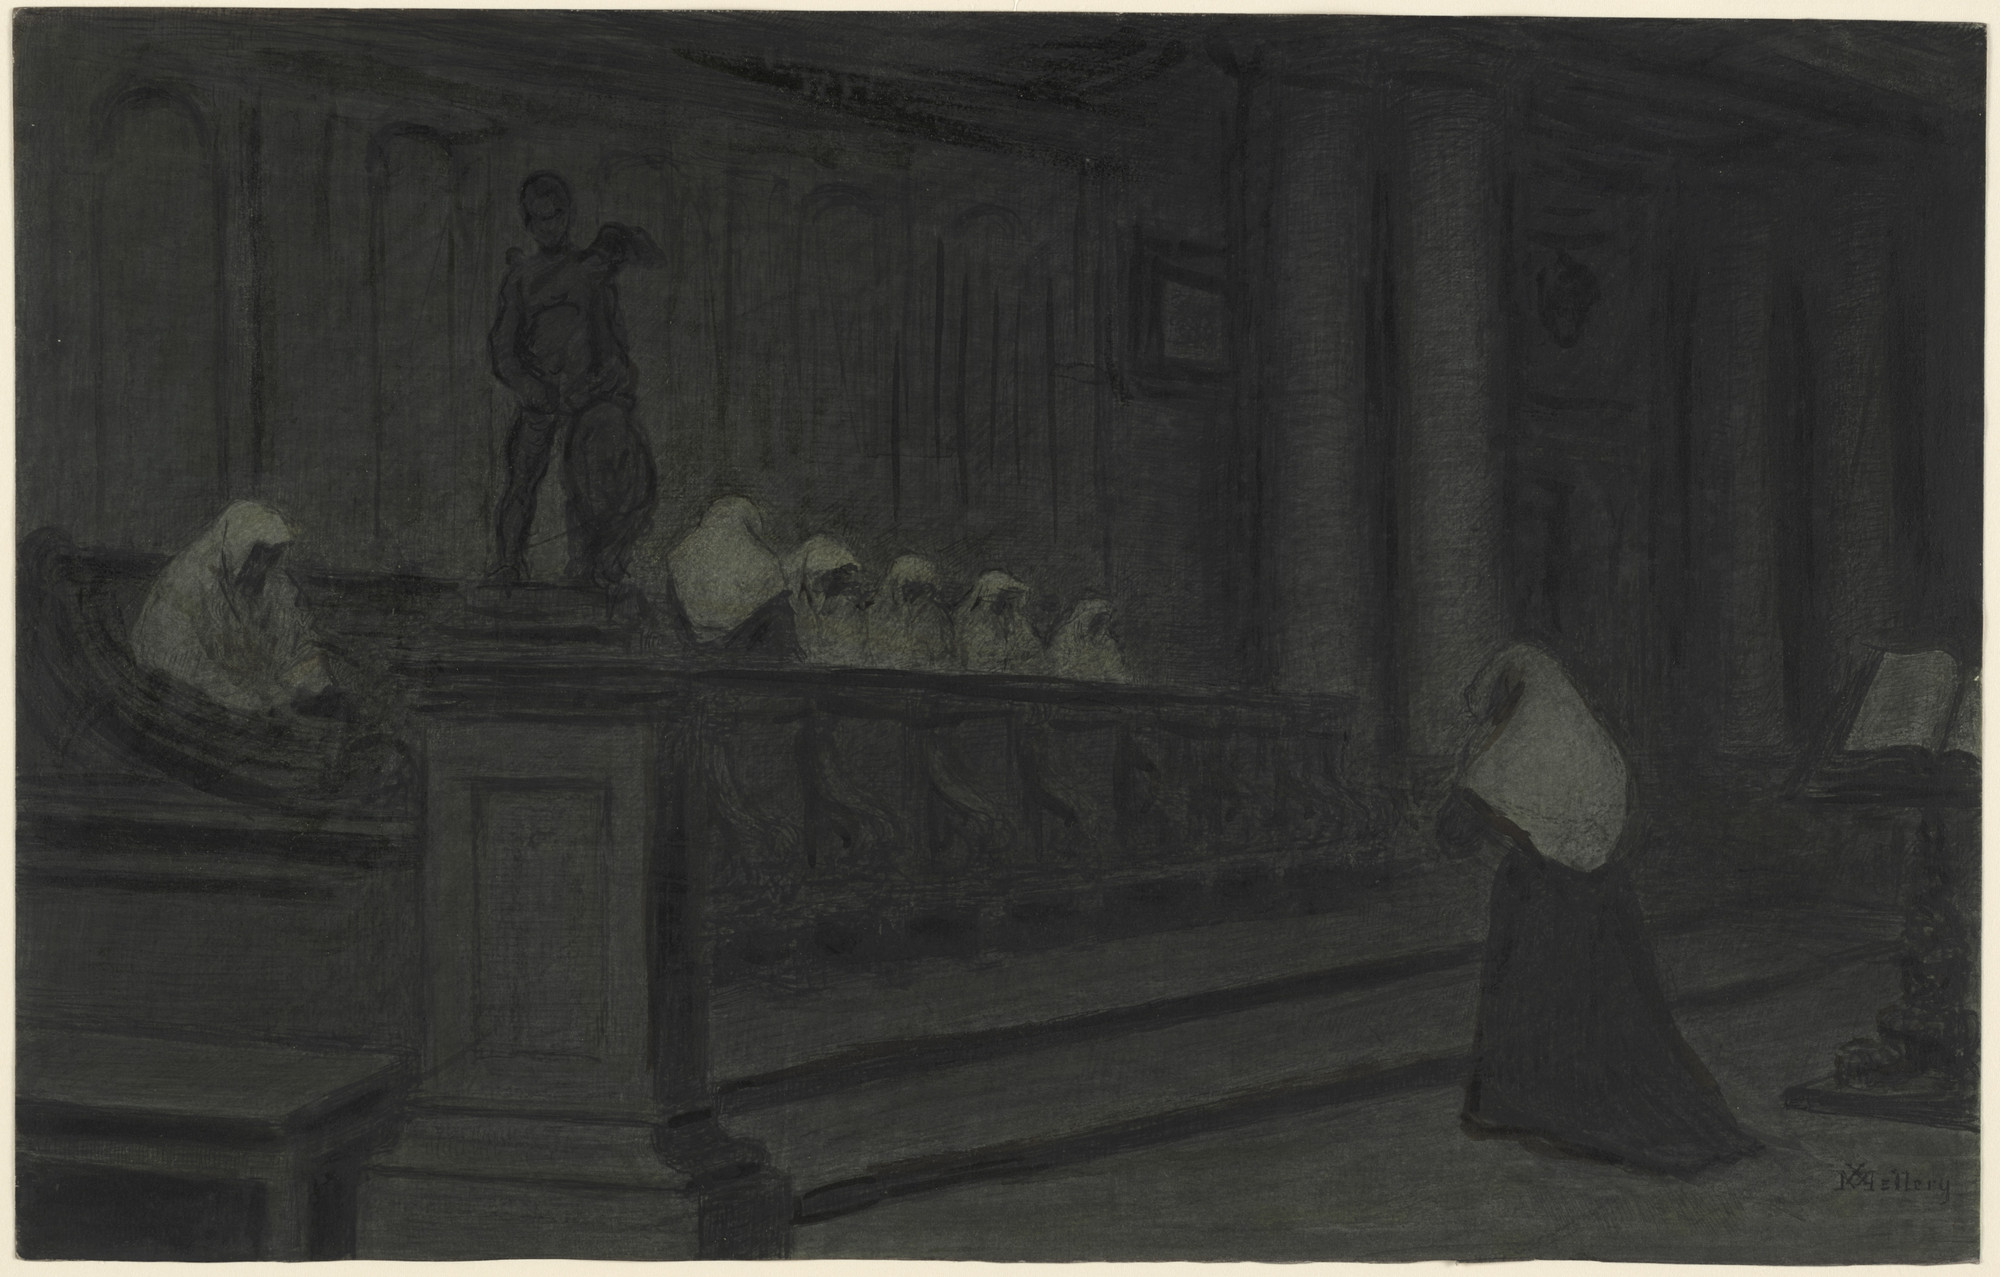 Xavier Mellery. Beguines at Prayer. (c. 1894)